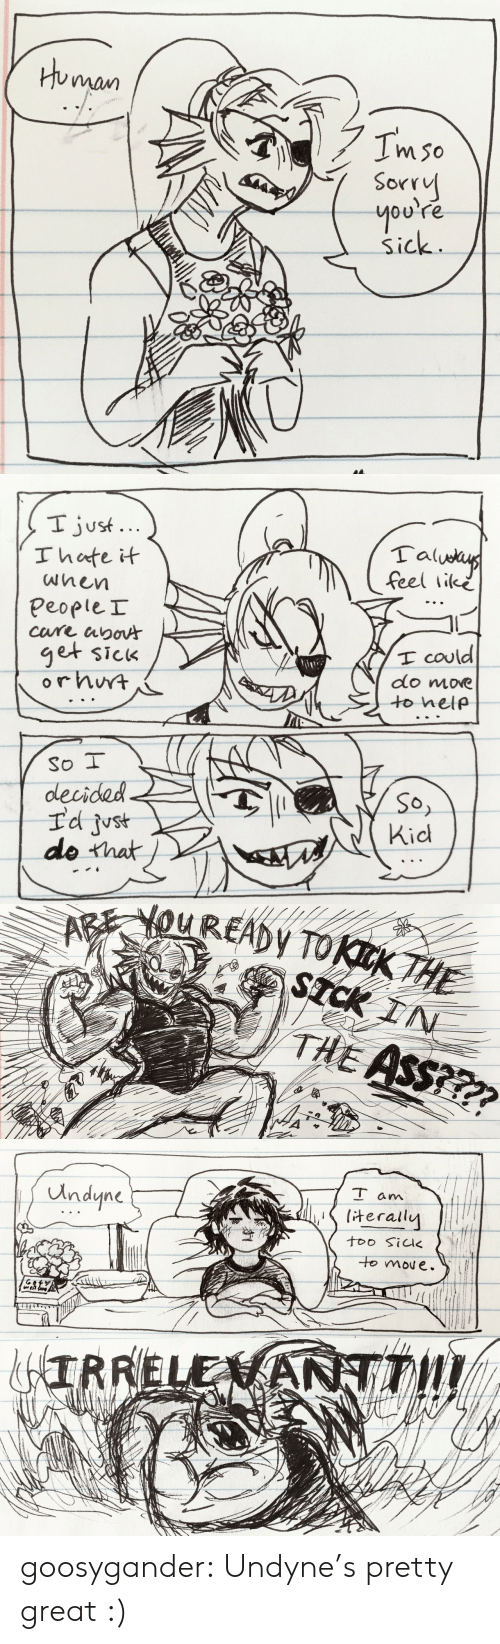 The Ass: Human  Imso  Sorry  you're  Sick   I just...  Ihate it  Talueus  feel like  wnen  PeopleI  cure apoA  get sick  orhwt  I could  do move  to help  So I  decided  Id just  do that  So,  Kid   AREYOUREADY TOKKTHE  STCK IN  THE ASS???   T am  Undyne  terally  too Sik  to moue.   &IRRELENANTT! goosygander:  Undyne's pretty great :)